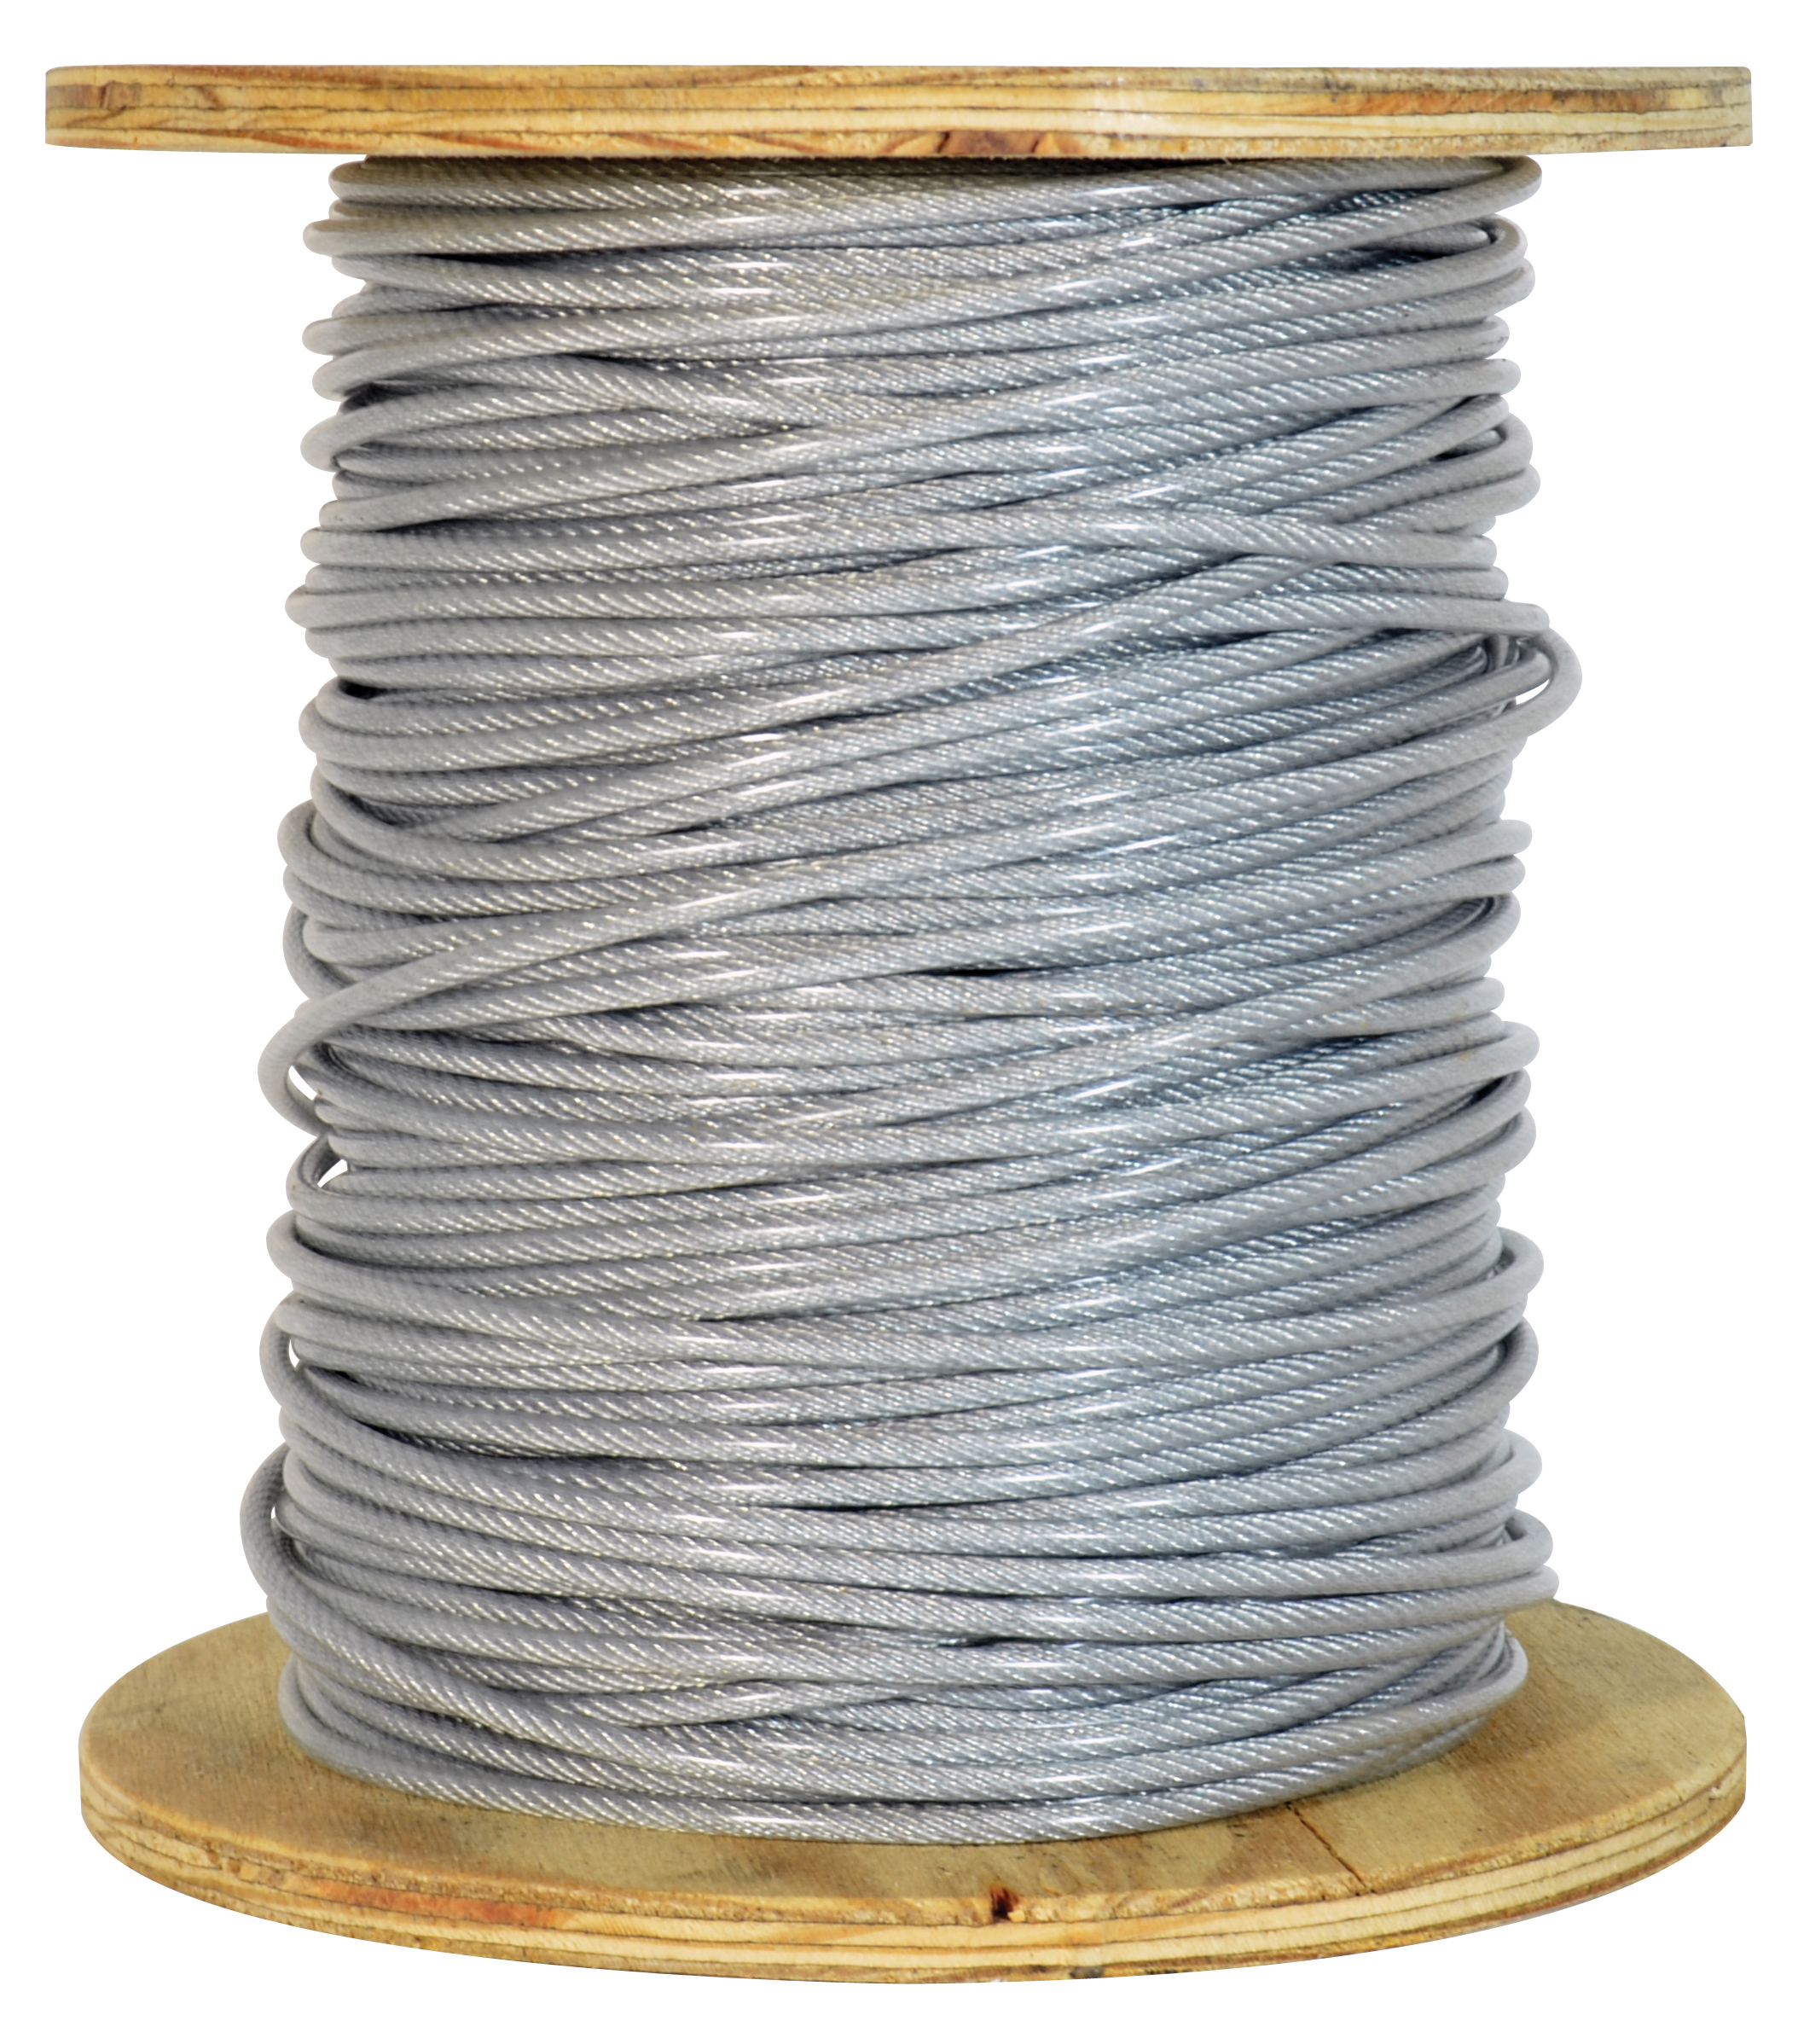 1/4 Inch x 250 ft 7X19 Strands 7000 Lb Clear Pvc Coated High Carbon Steel Galvanized Aircraft Cable